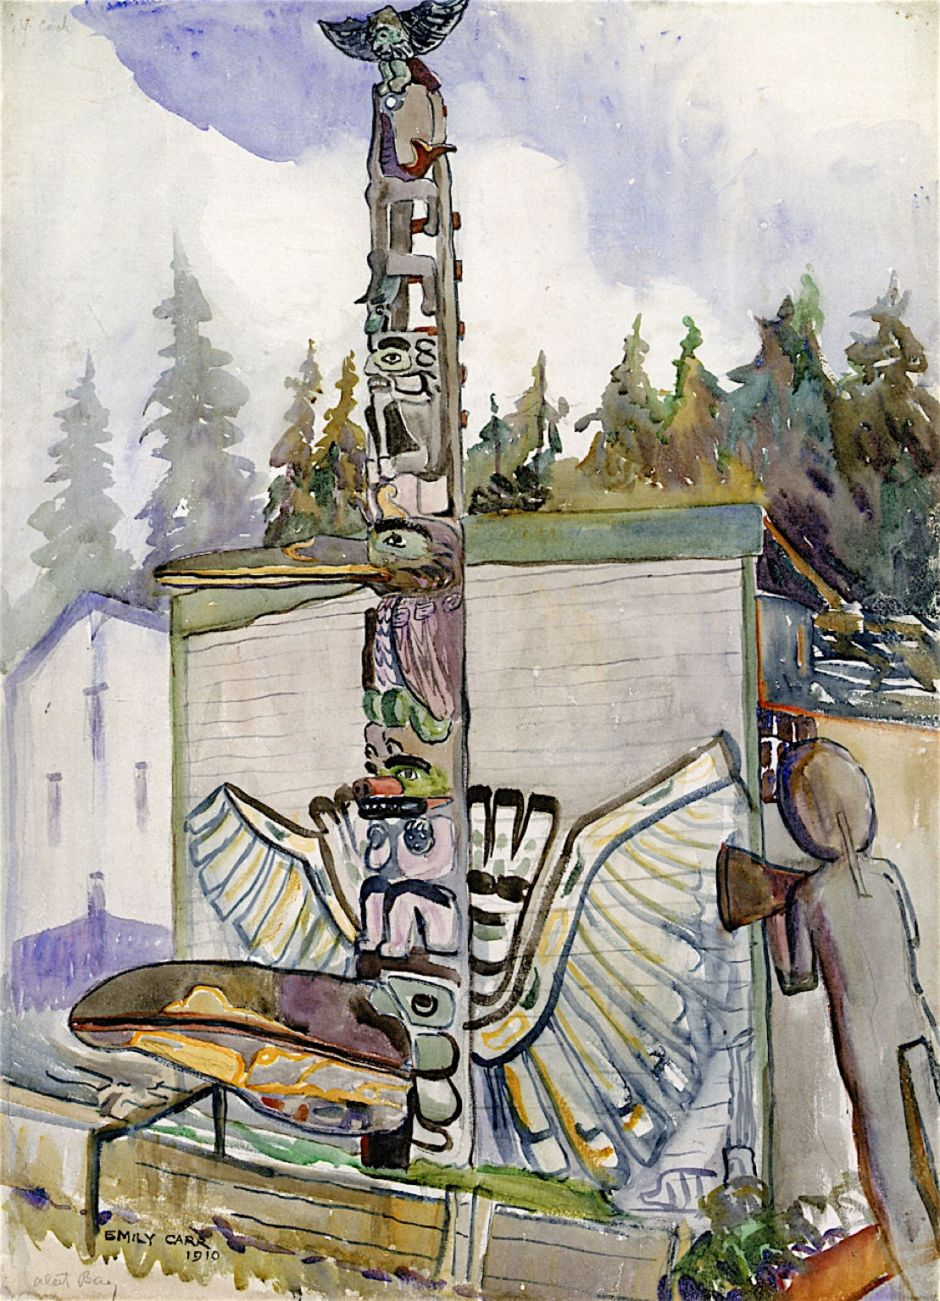 Totems And Trees Emily Carr Paintings 1892-1911